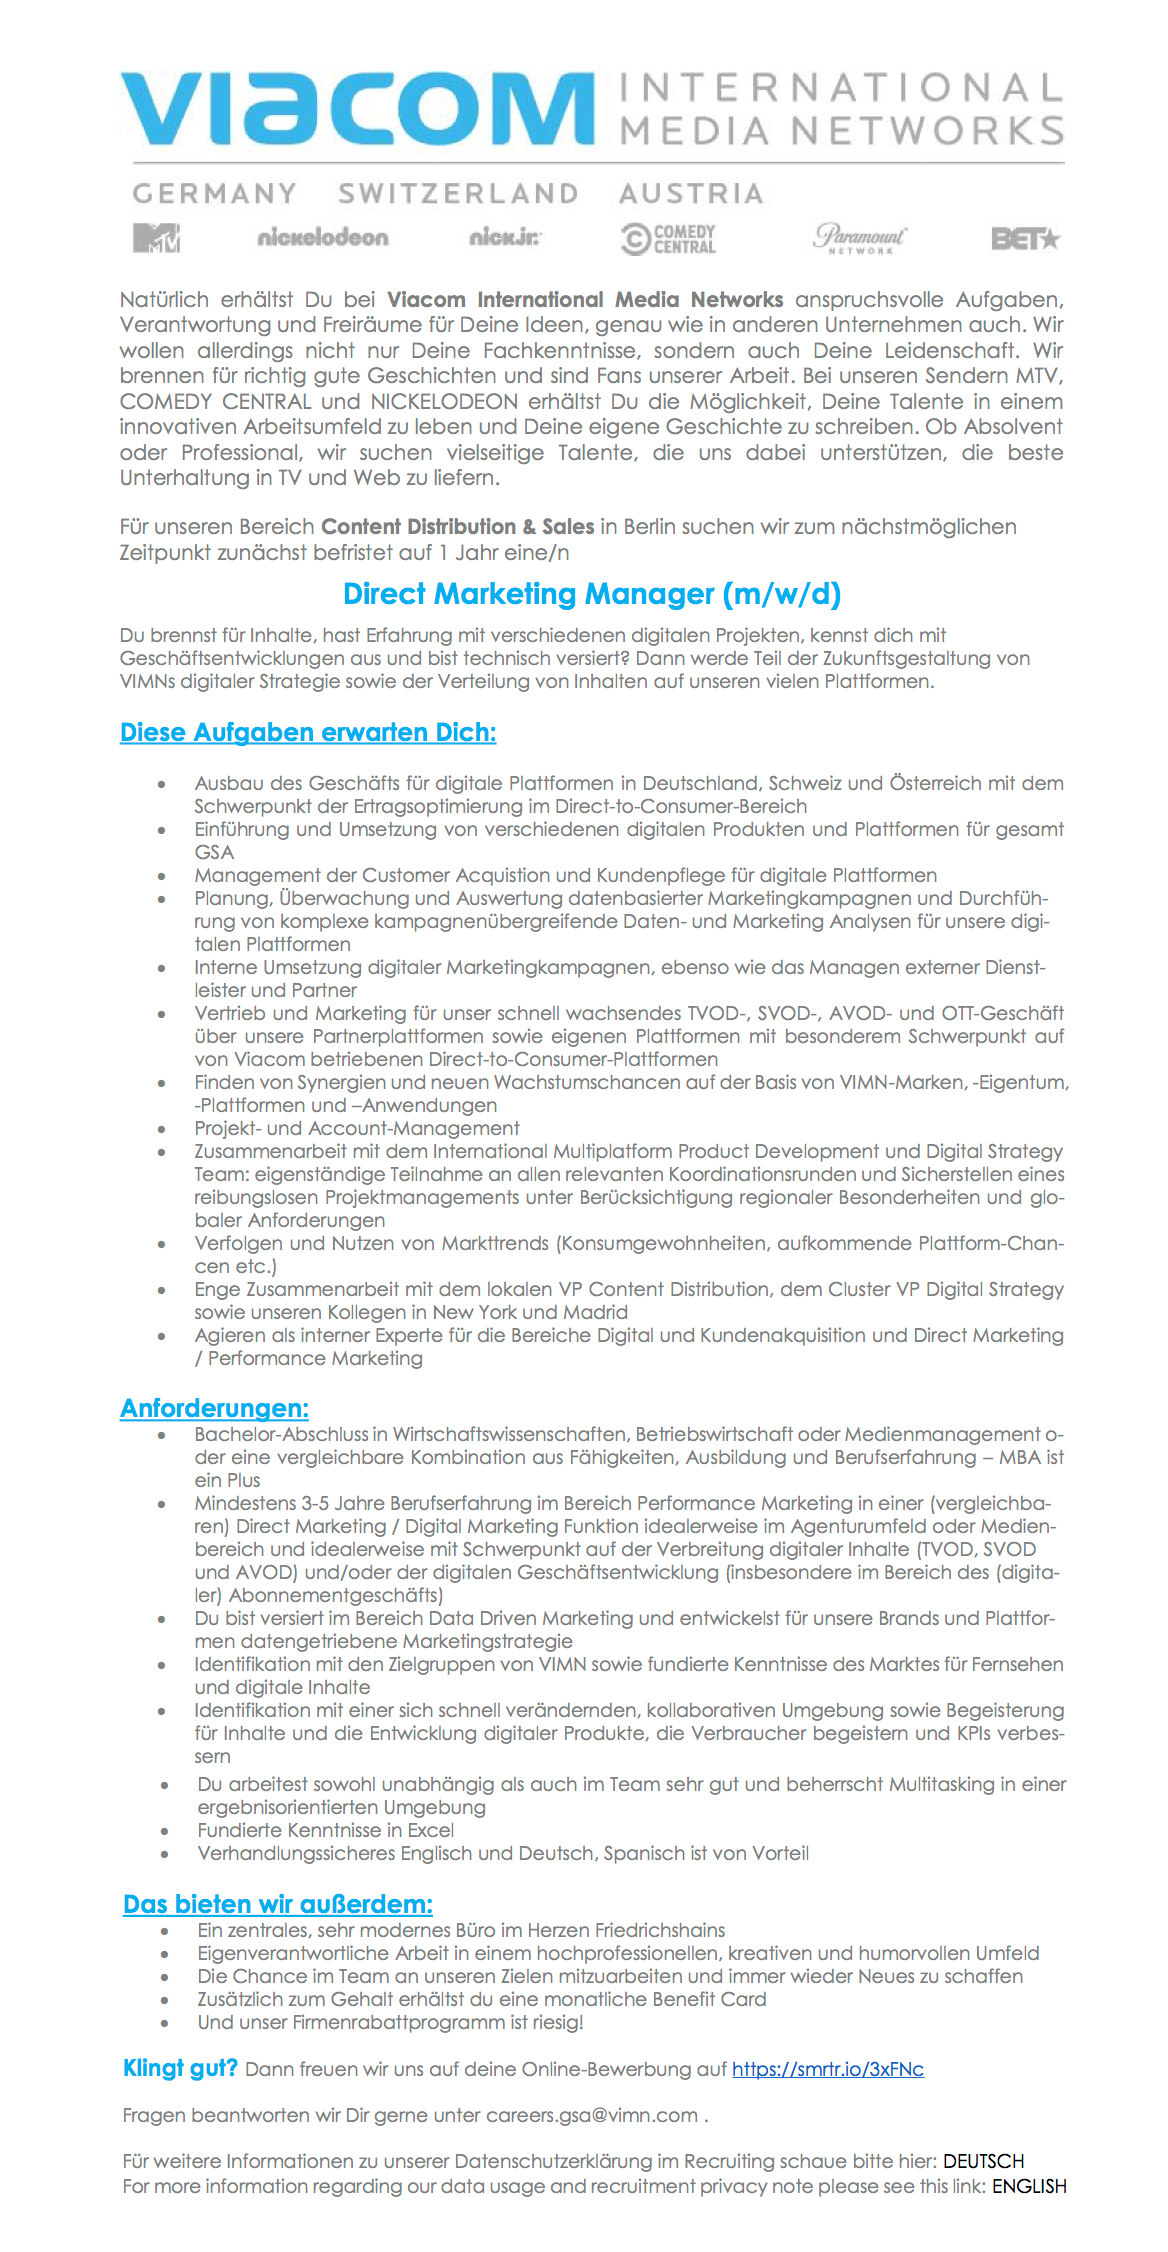 Direct Marketing Manager (m/w/d)